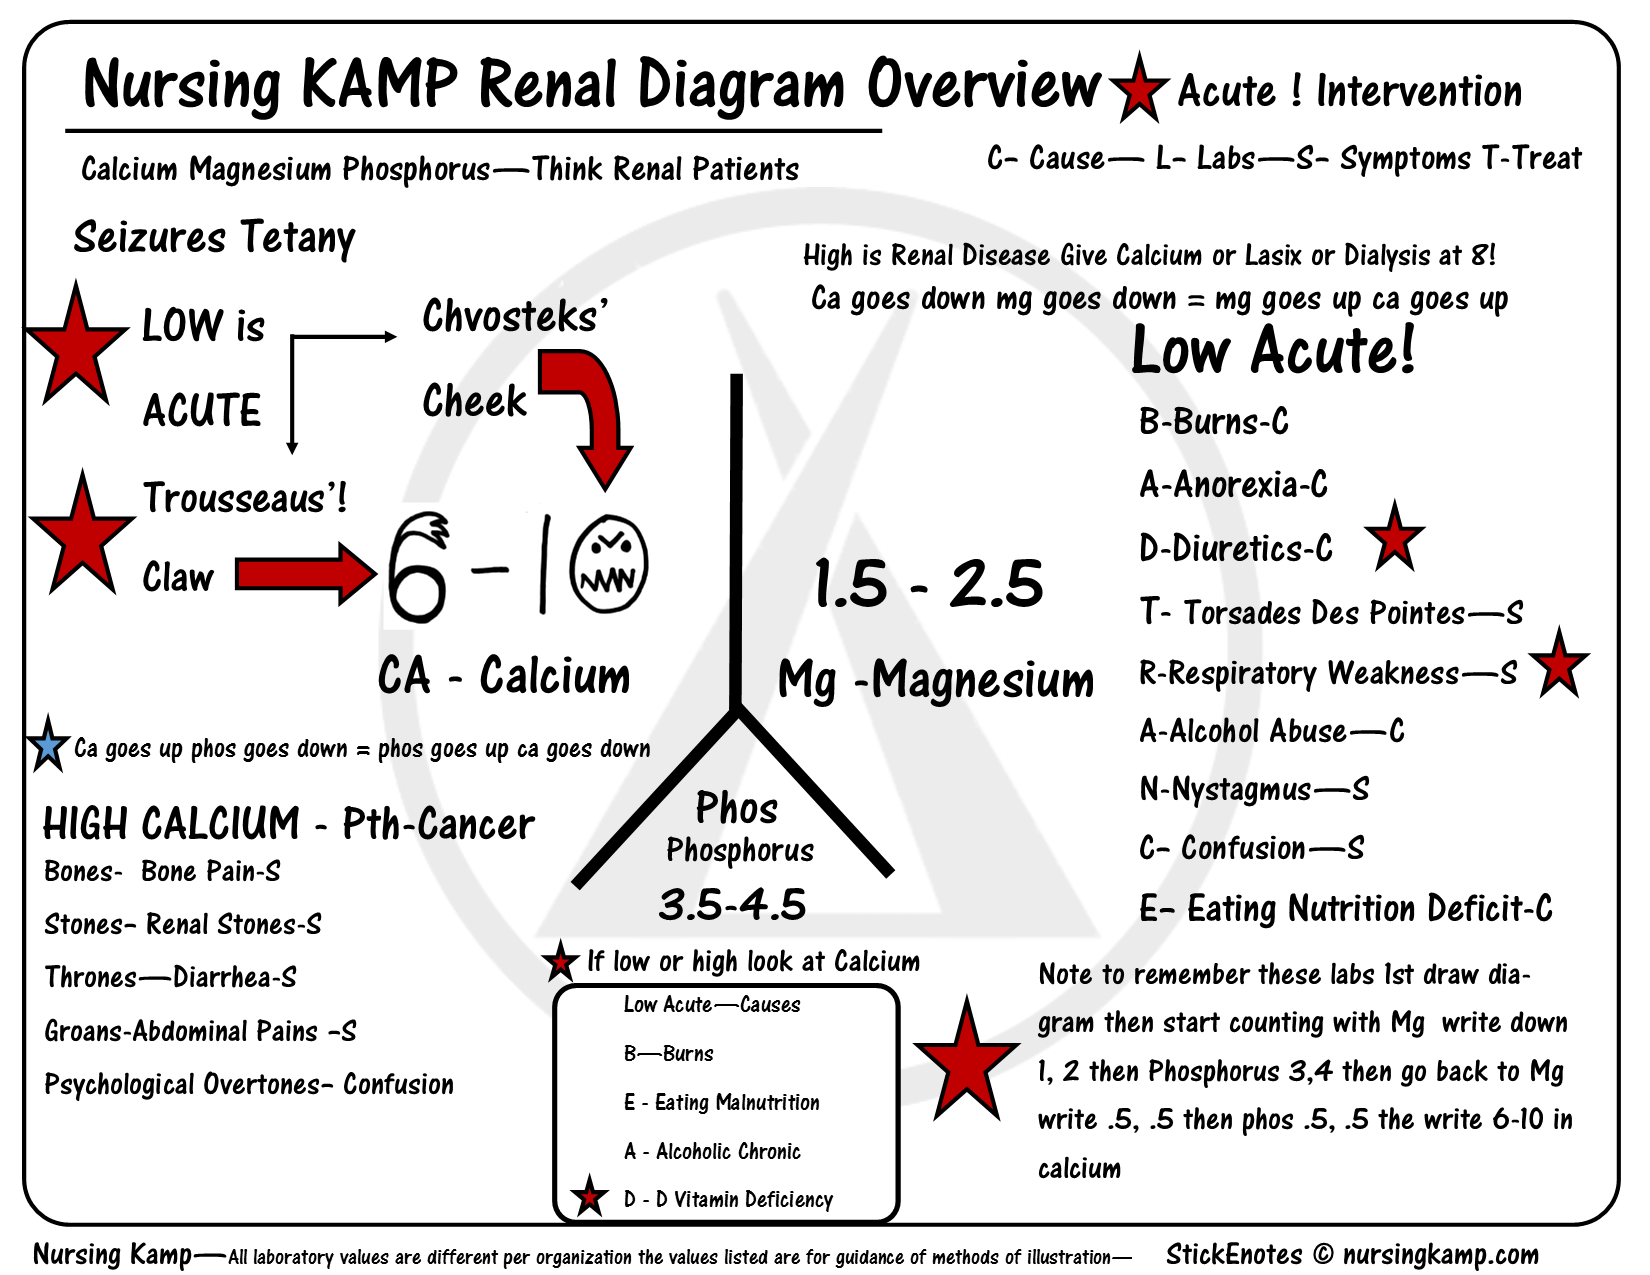 Renal Diagram Calcium Amp Phosphorus And Magnesium Focusing On Acute Is Low And High Is Chronic